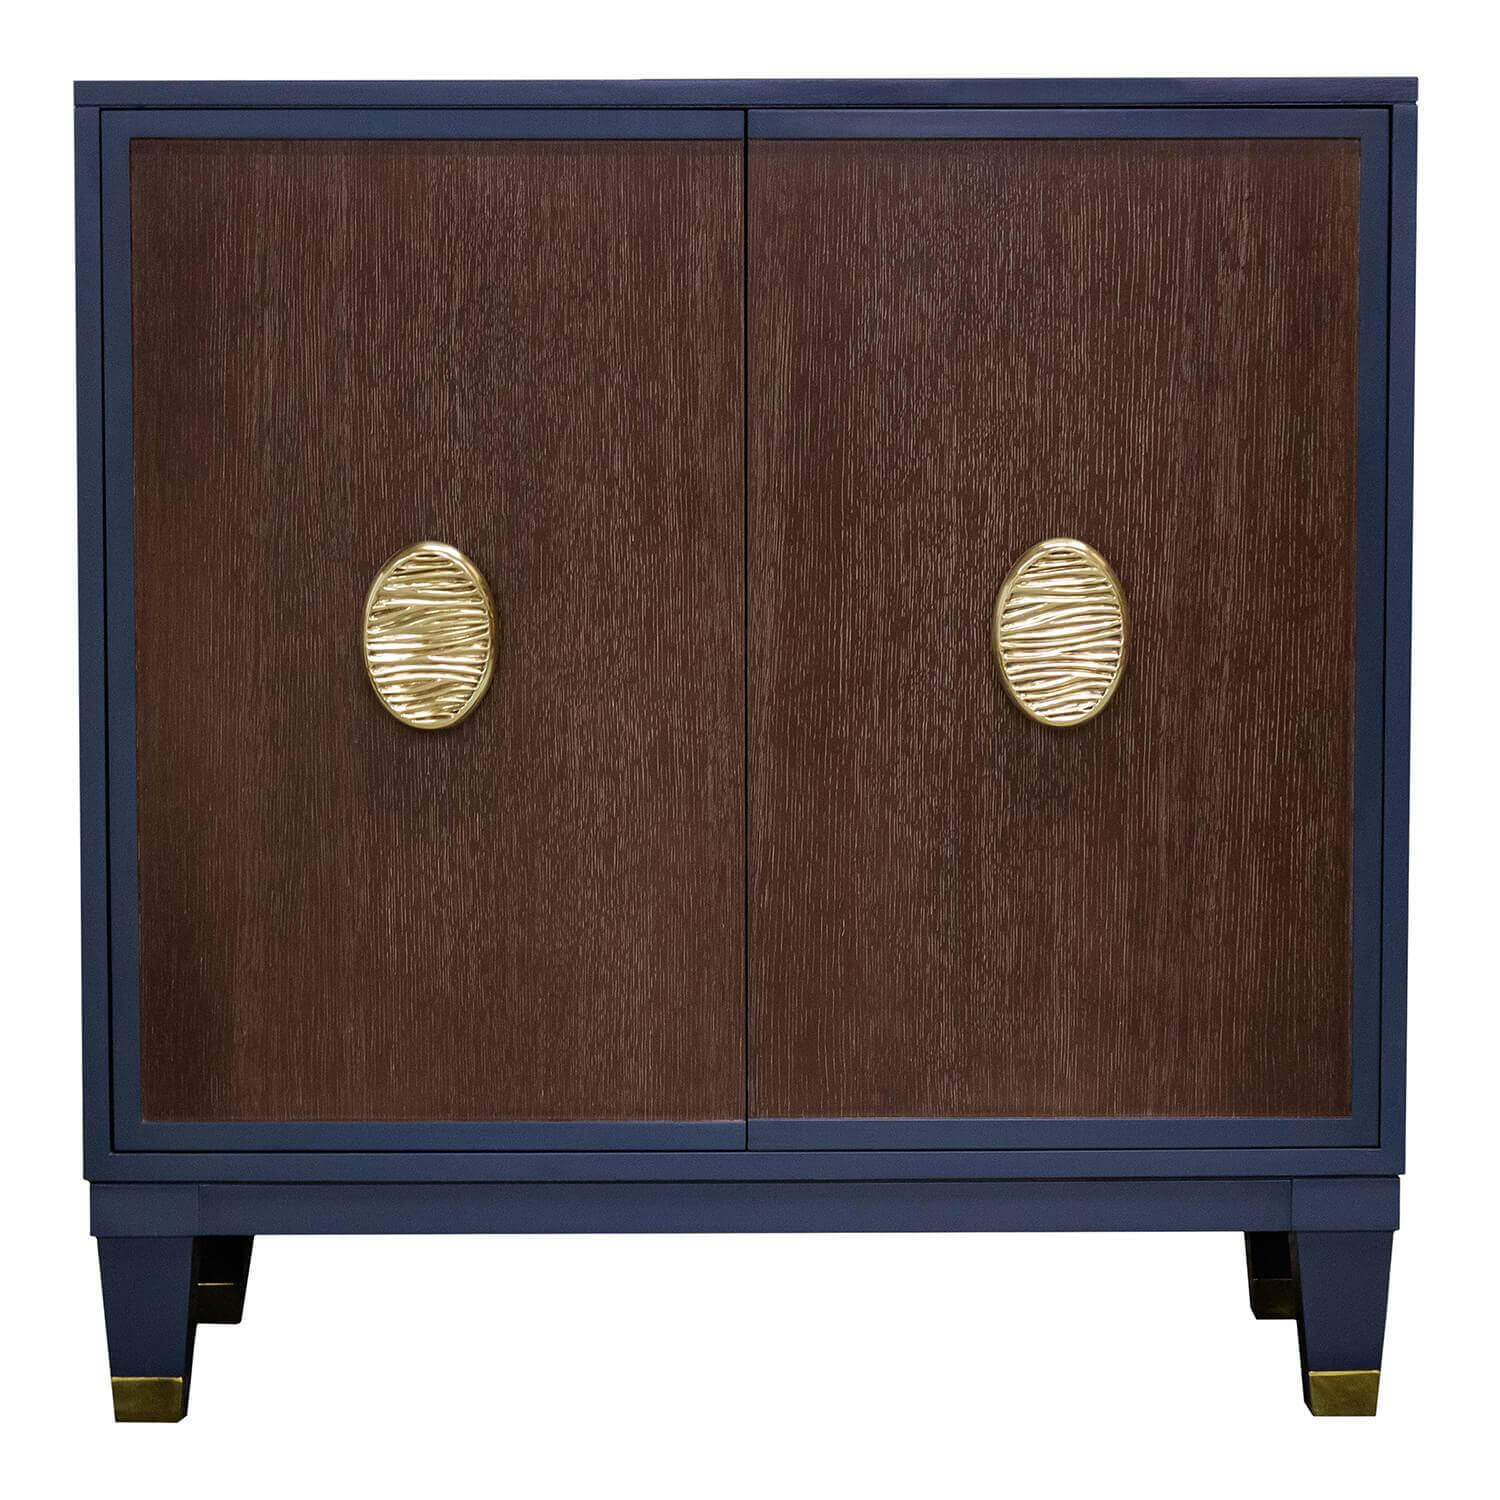 Facets Modern 36 Two-Door Cabinet - Coffee